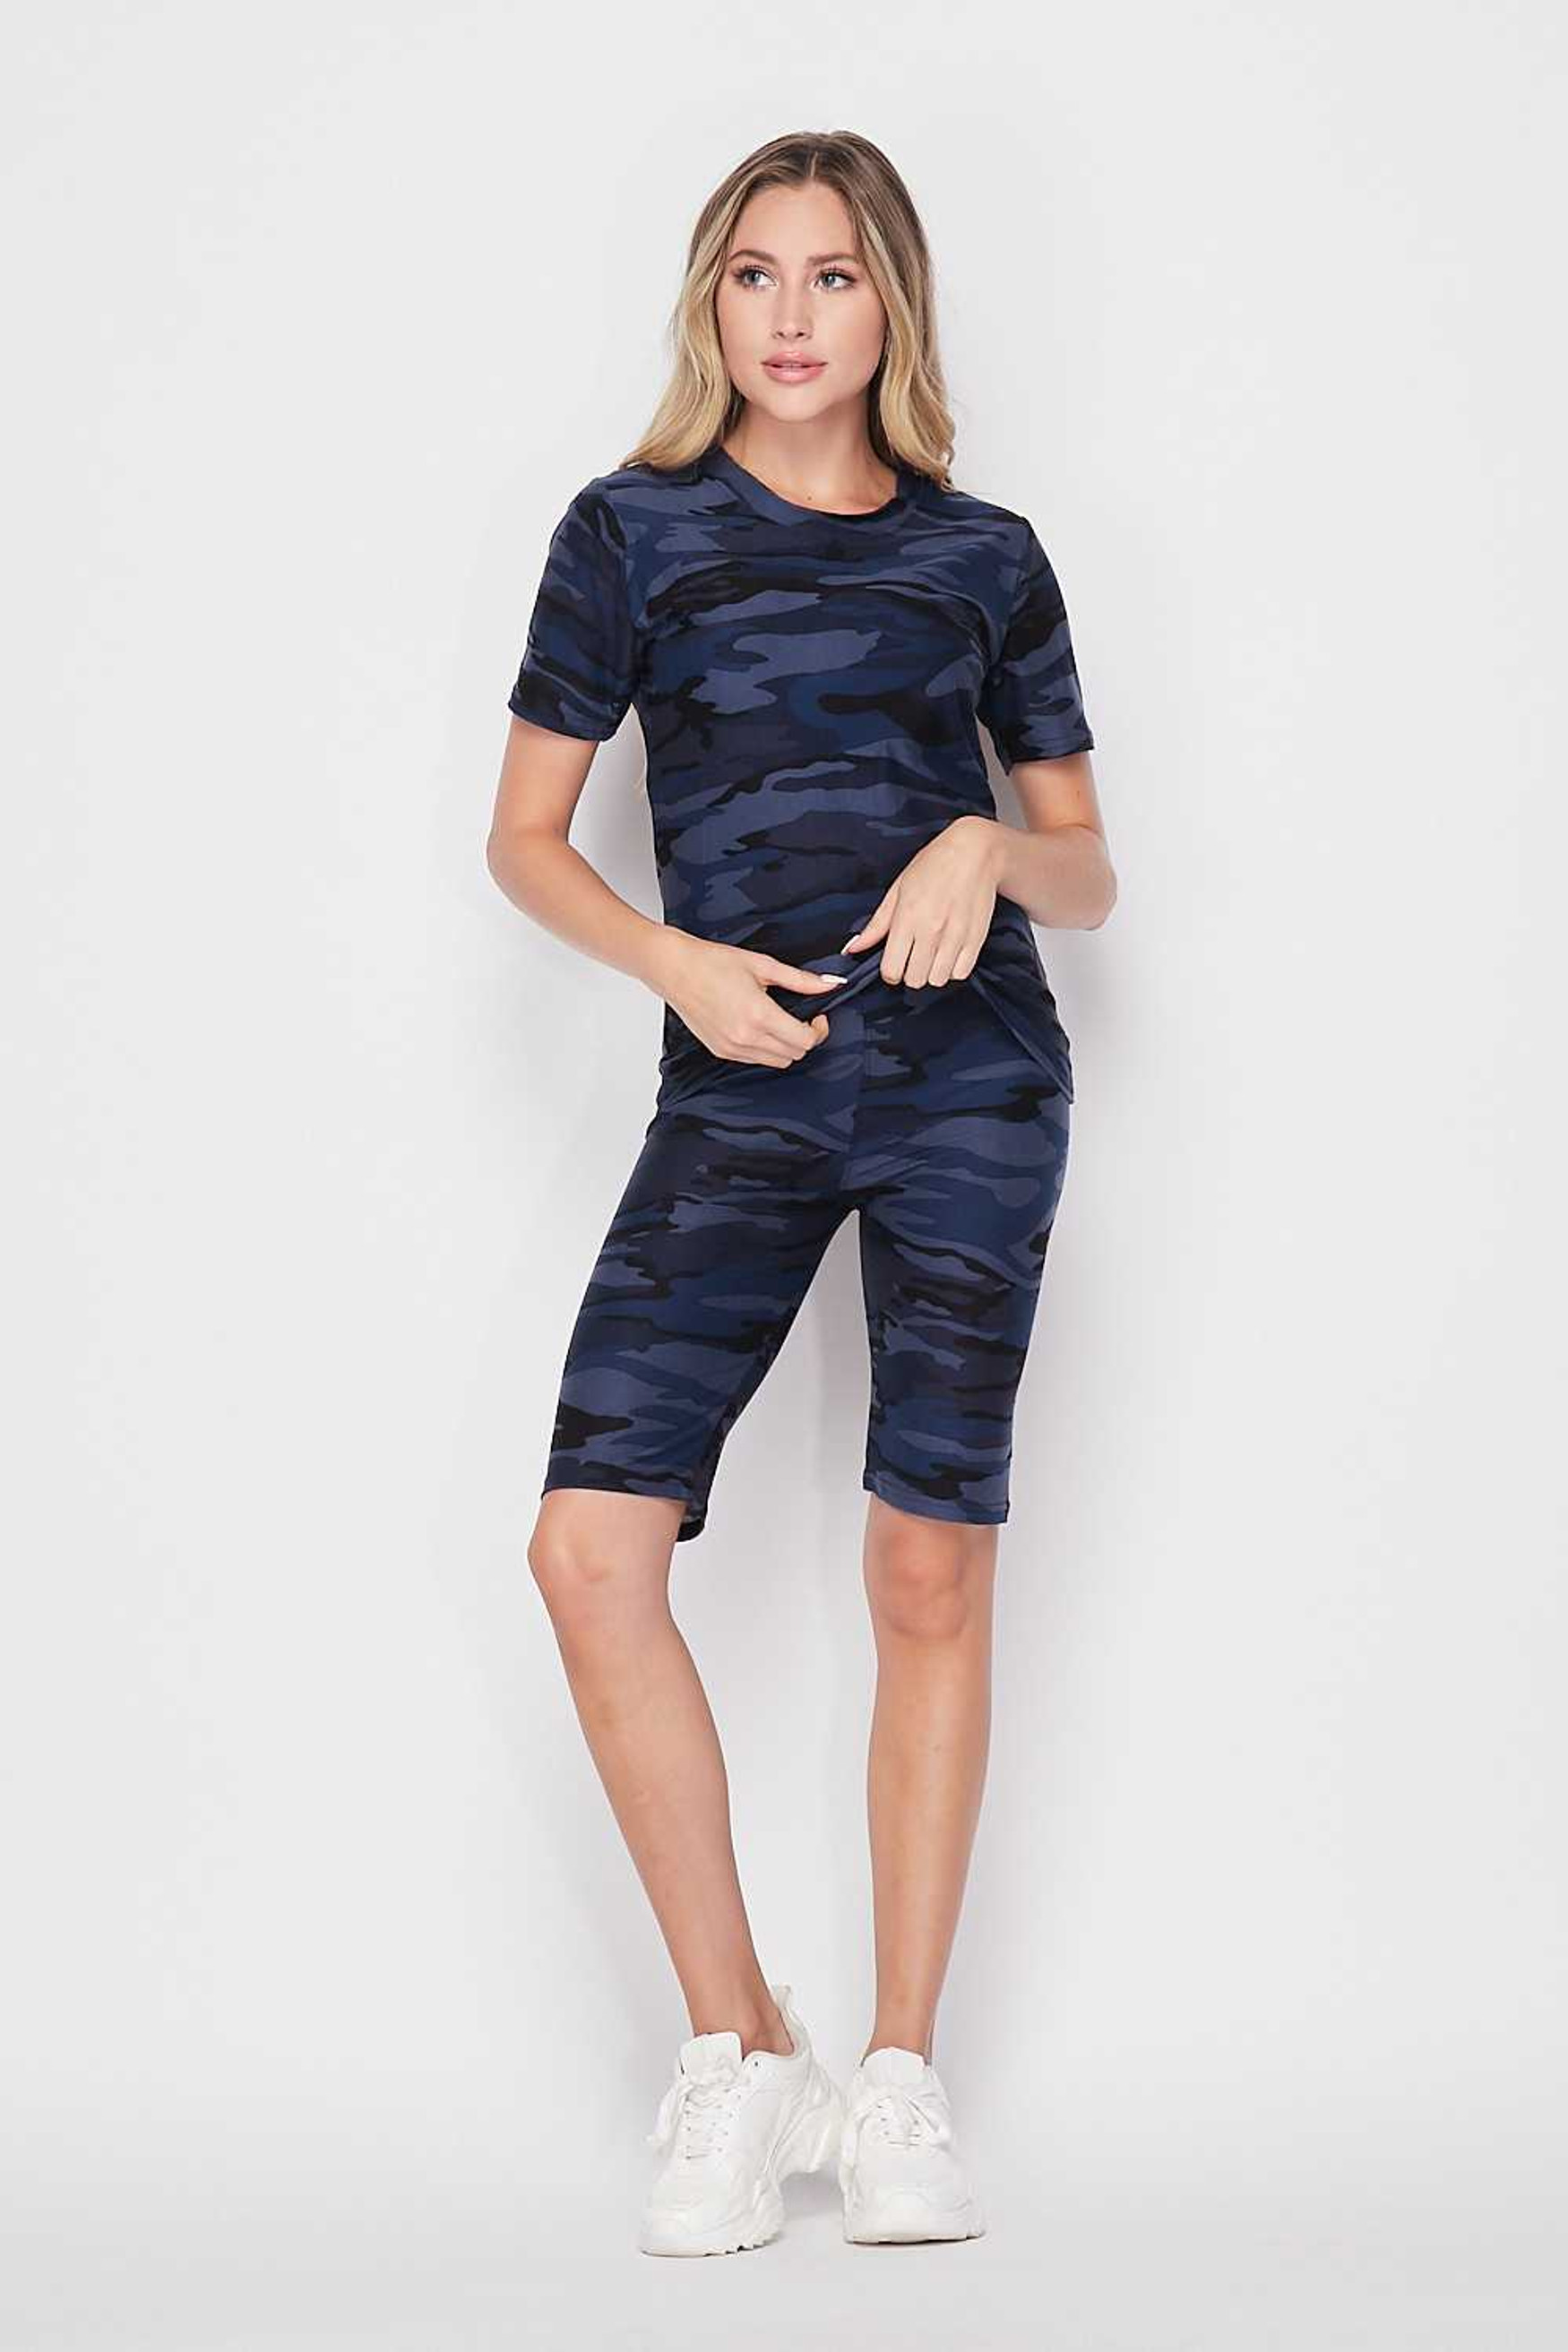 2 Piece Buttery Soft Navy Camouflage Biker Shorts and T-Shirt Set